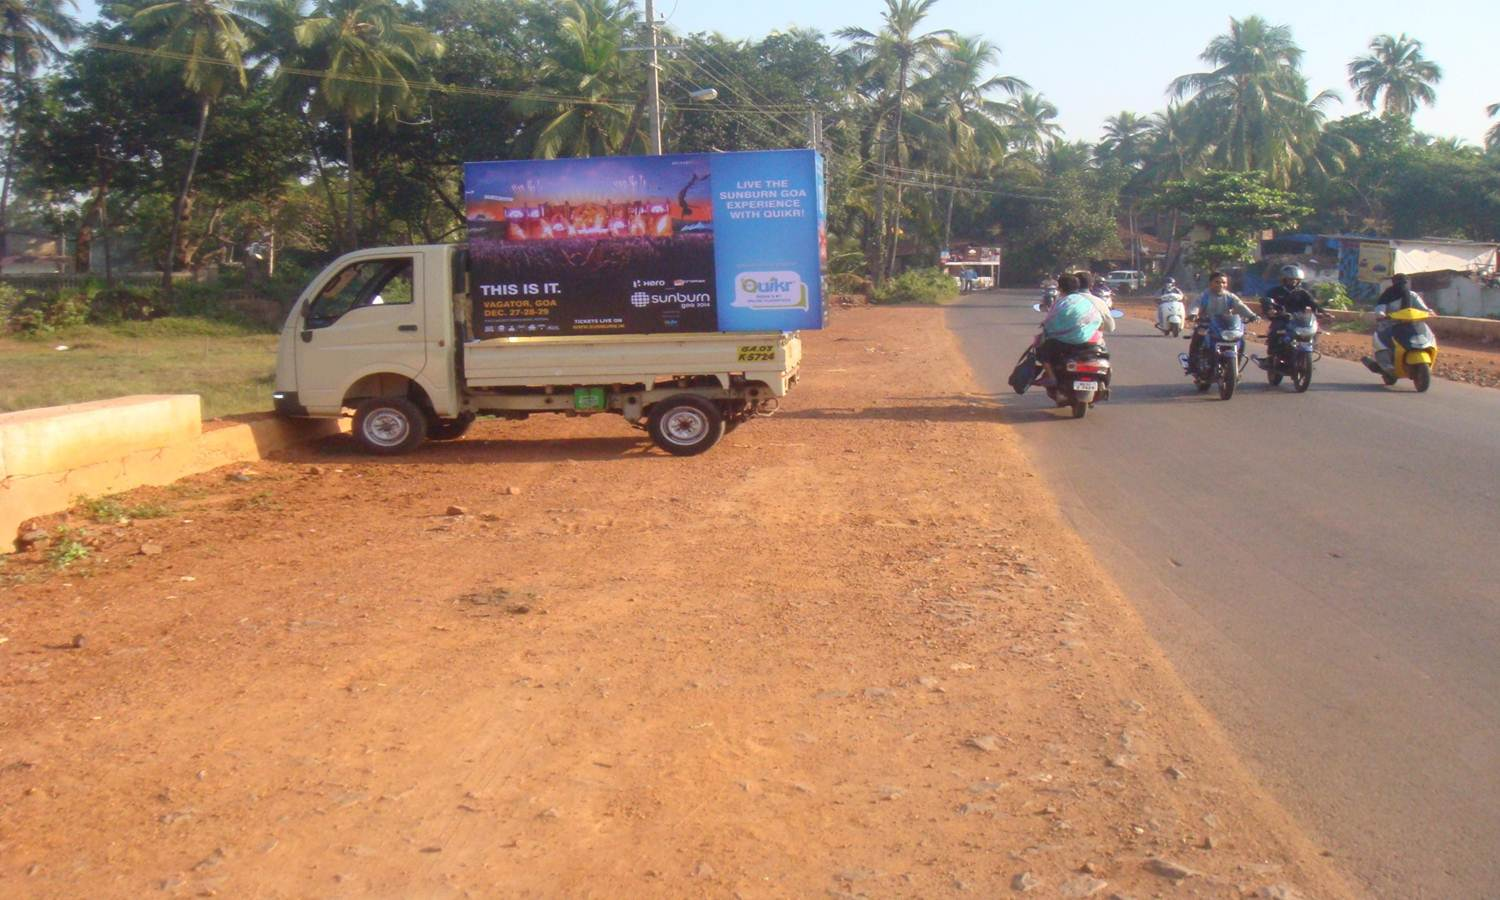 Outdoor Advertising in Mobile Van Panji